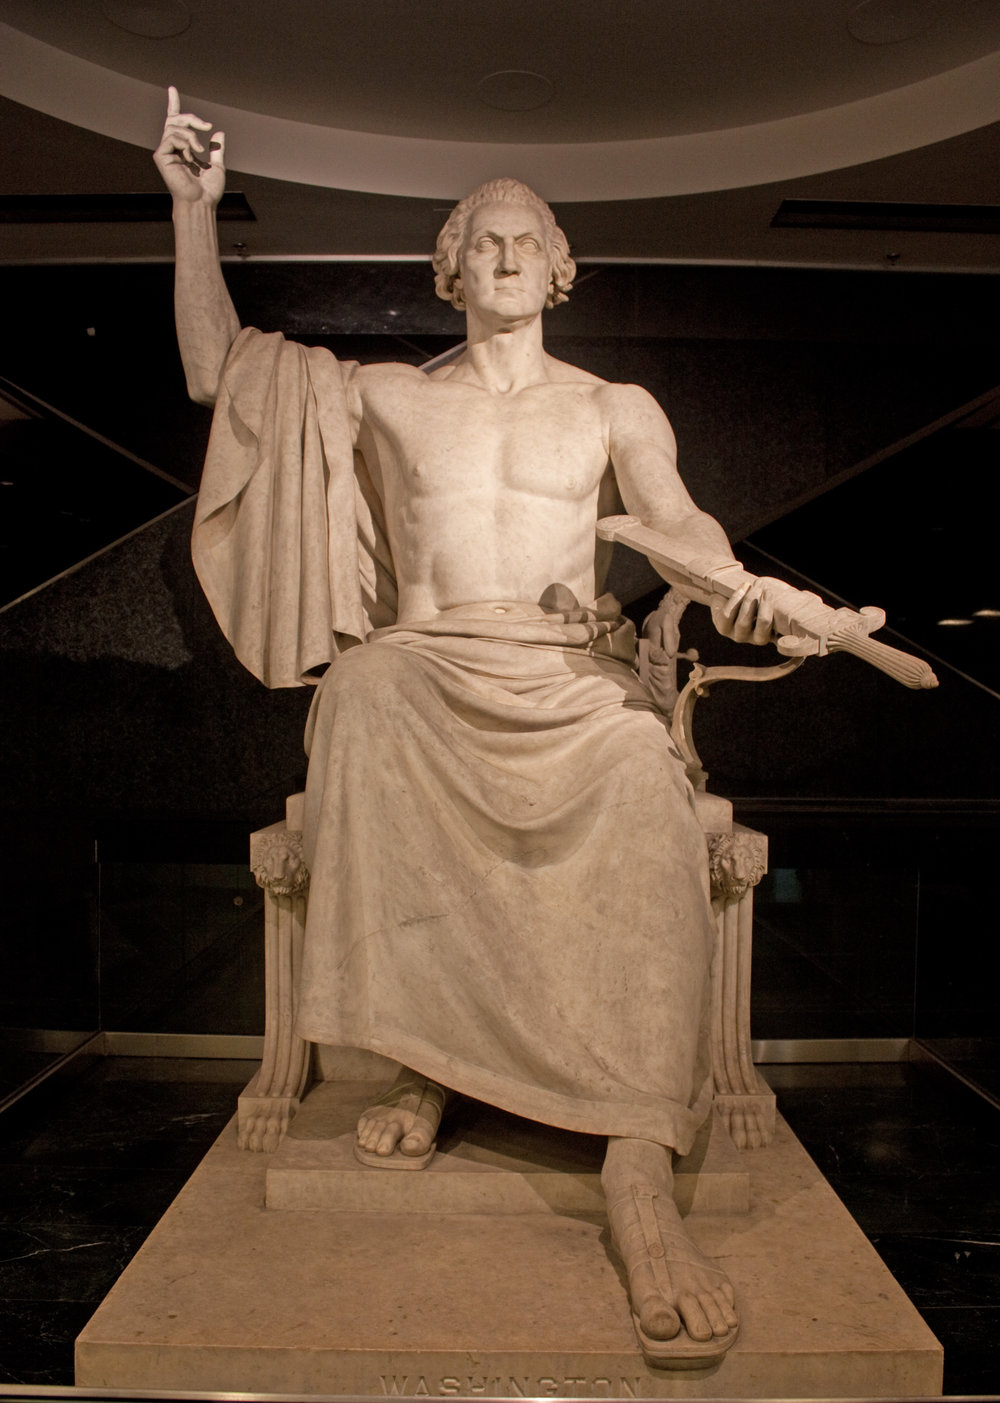 George_Washington_Greenough_statue.jpg